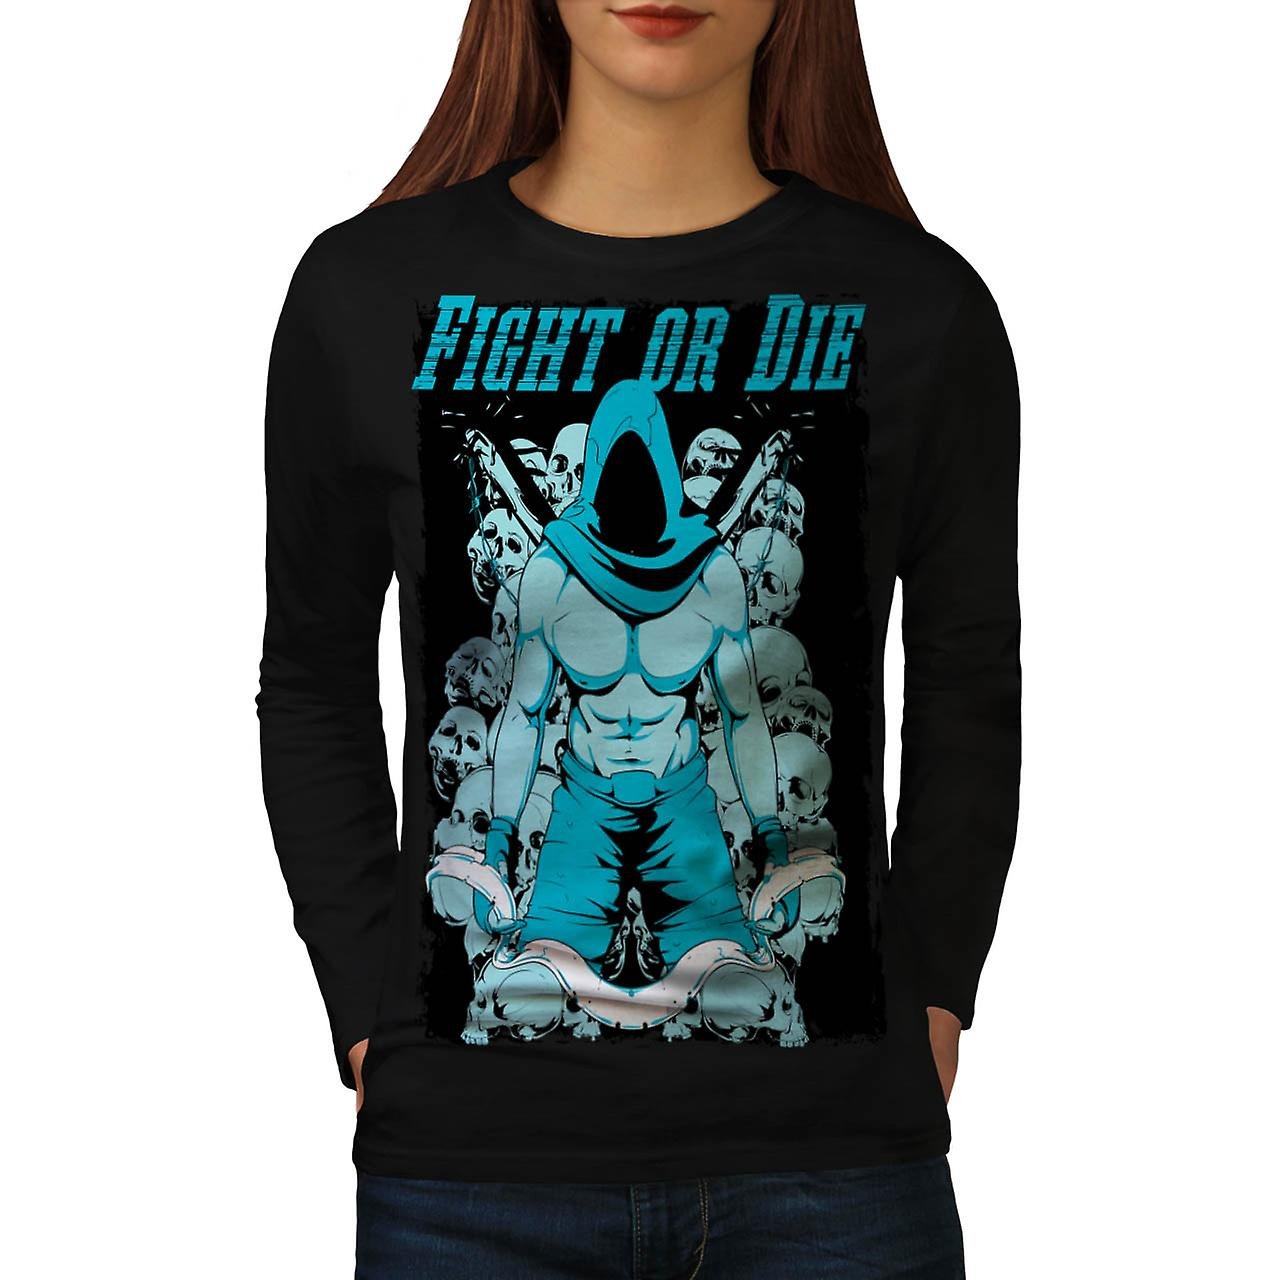 Fight or Die Warrior Battle Brawl Women Black Long Sleeve T-shirt | Wellcoda